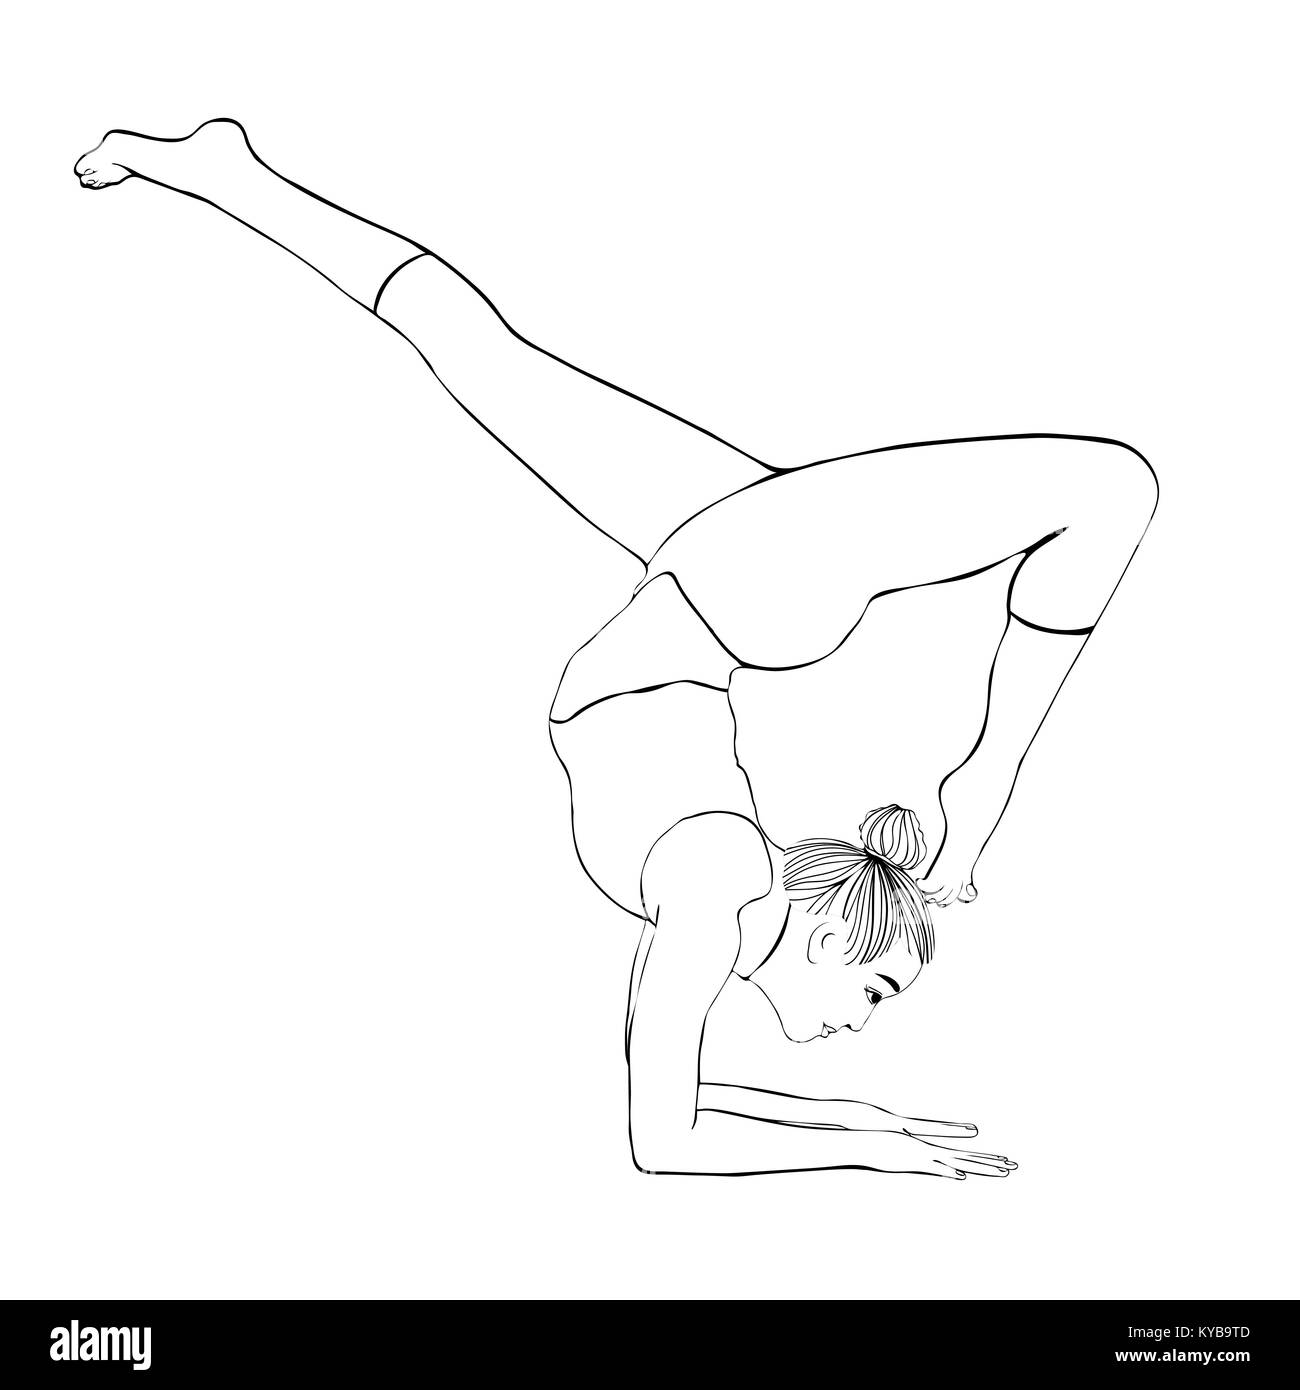 Yoga Pose Woman Handstand Vector Coloring Drawing Portrait Meditation Is Engaged In Gymnastic Girl Makes A Stand On The Hands Outline Black And White